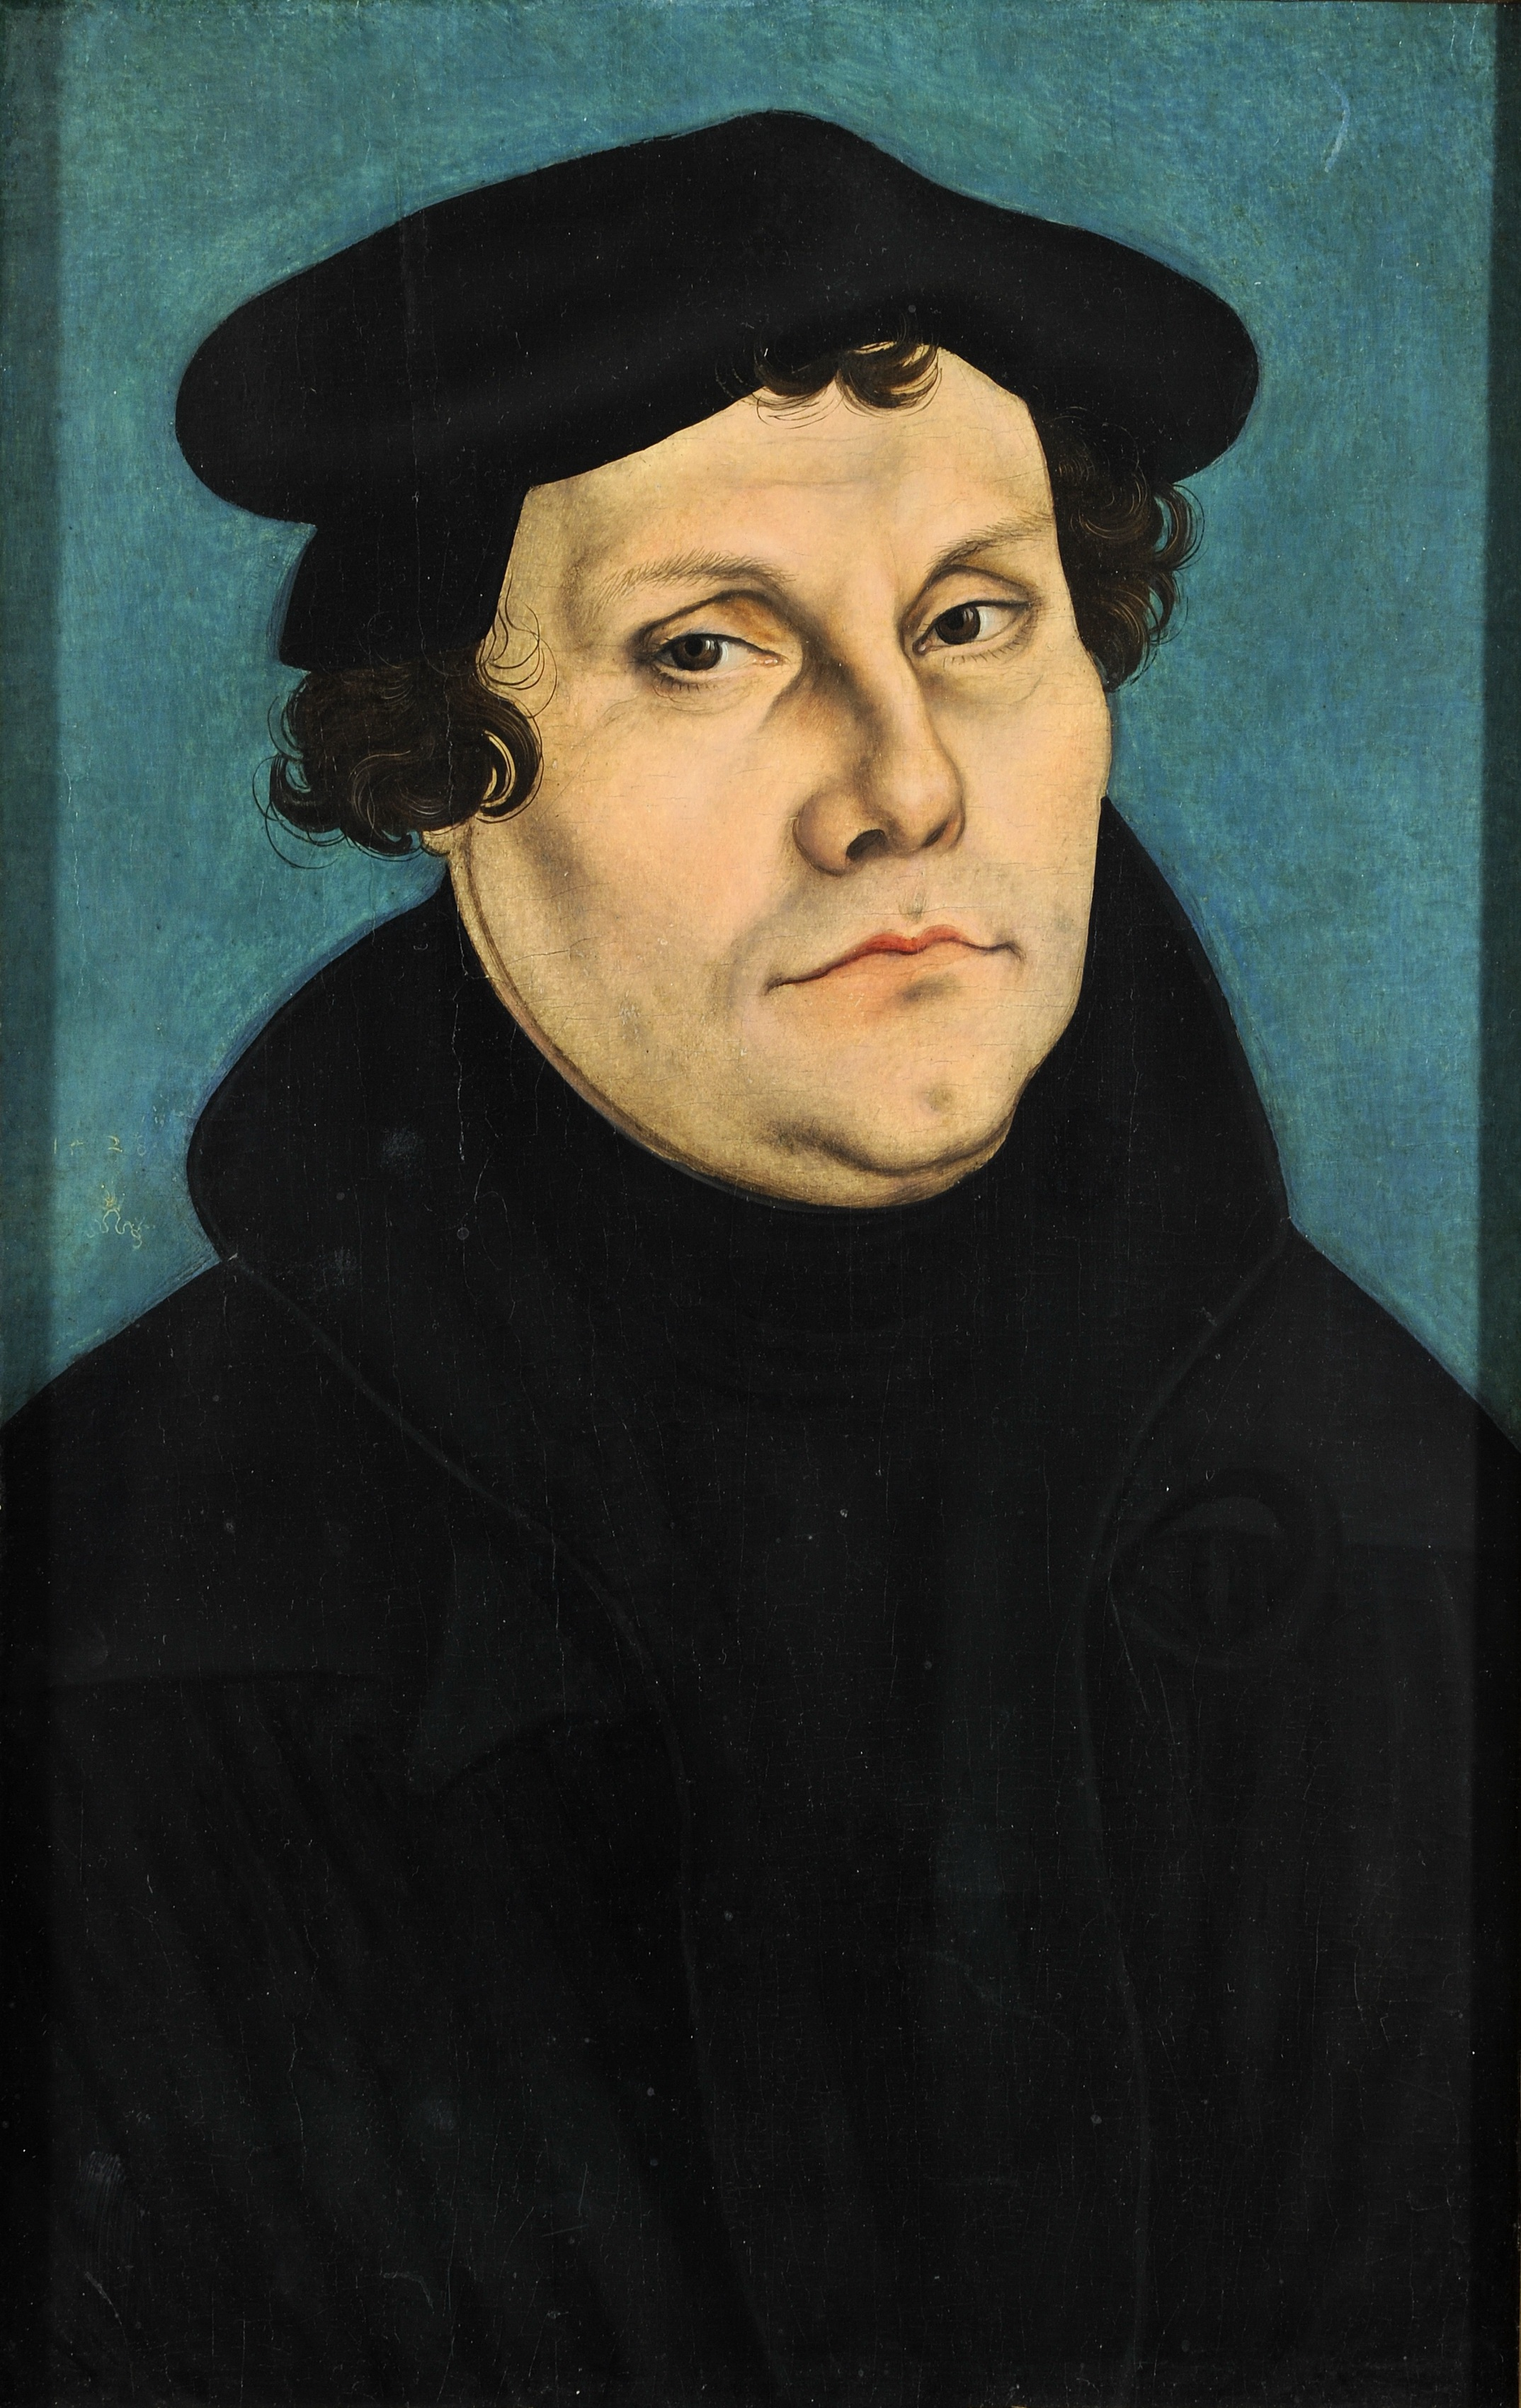 https://upload.wikimedia.org/wikipedia/commons/9/90/Lucas_Cranach_d.%C3%84._-_Martin_Luther%2C_1528_%28Veste_Coburg%29.jpg